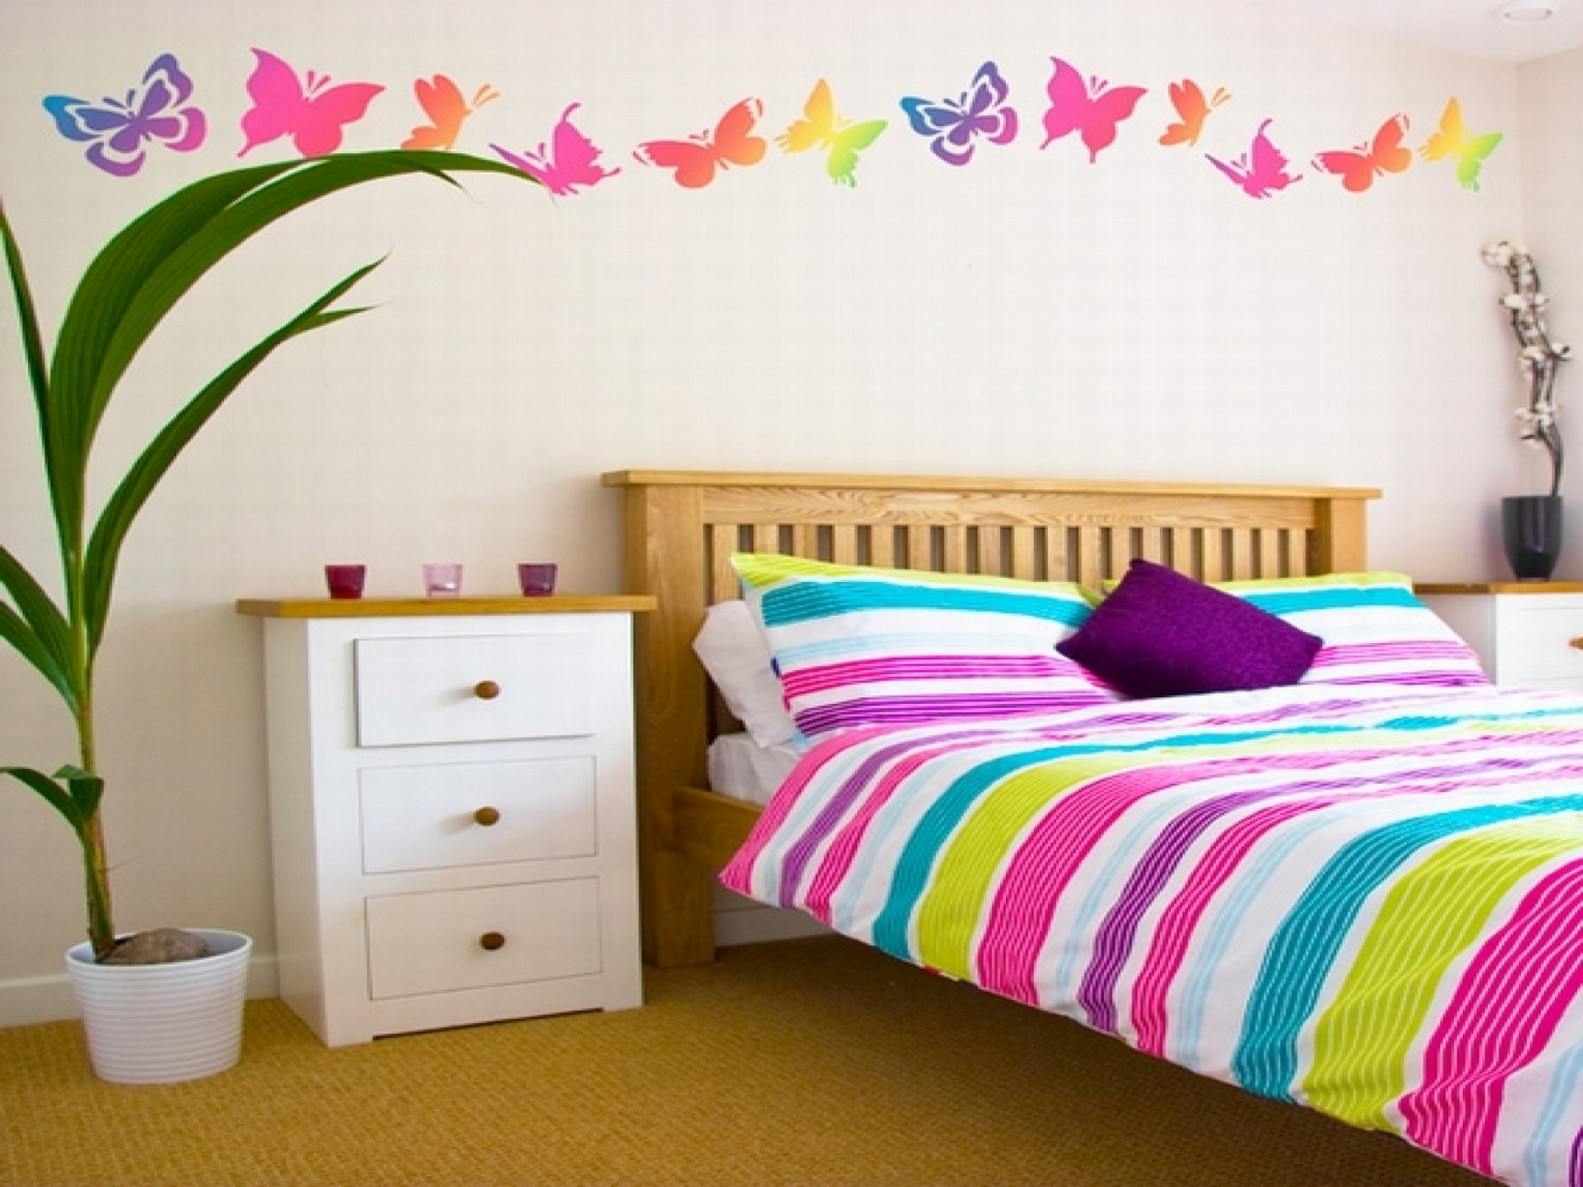 Mesmerizing Girls Bedroom Wall Decor Of Bedroom Excellent Decorate Teenage Girls Teenage Acnn Decor